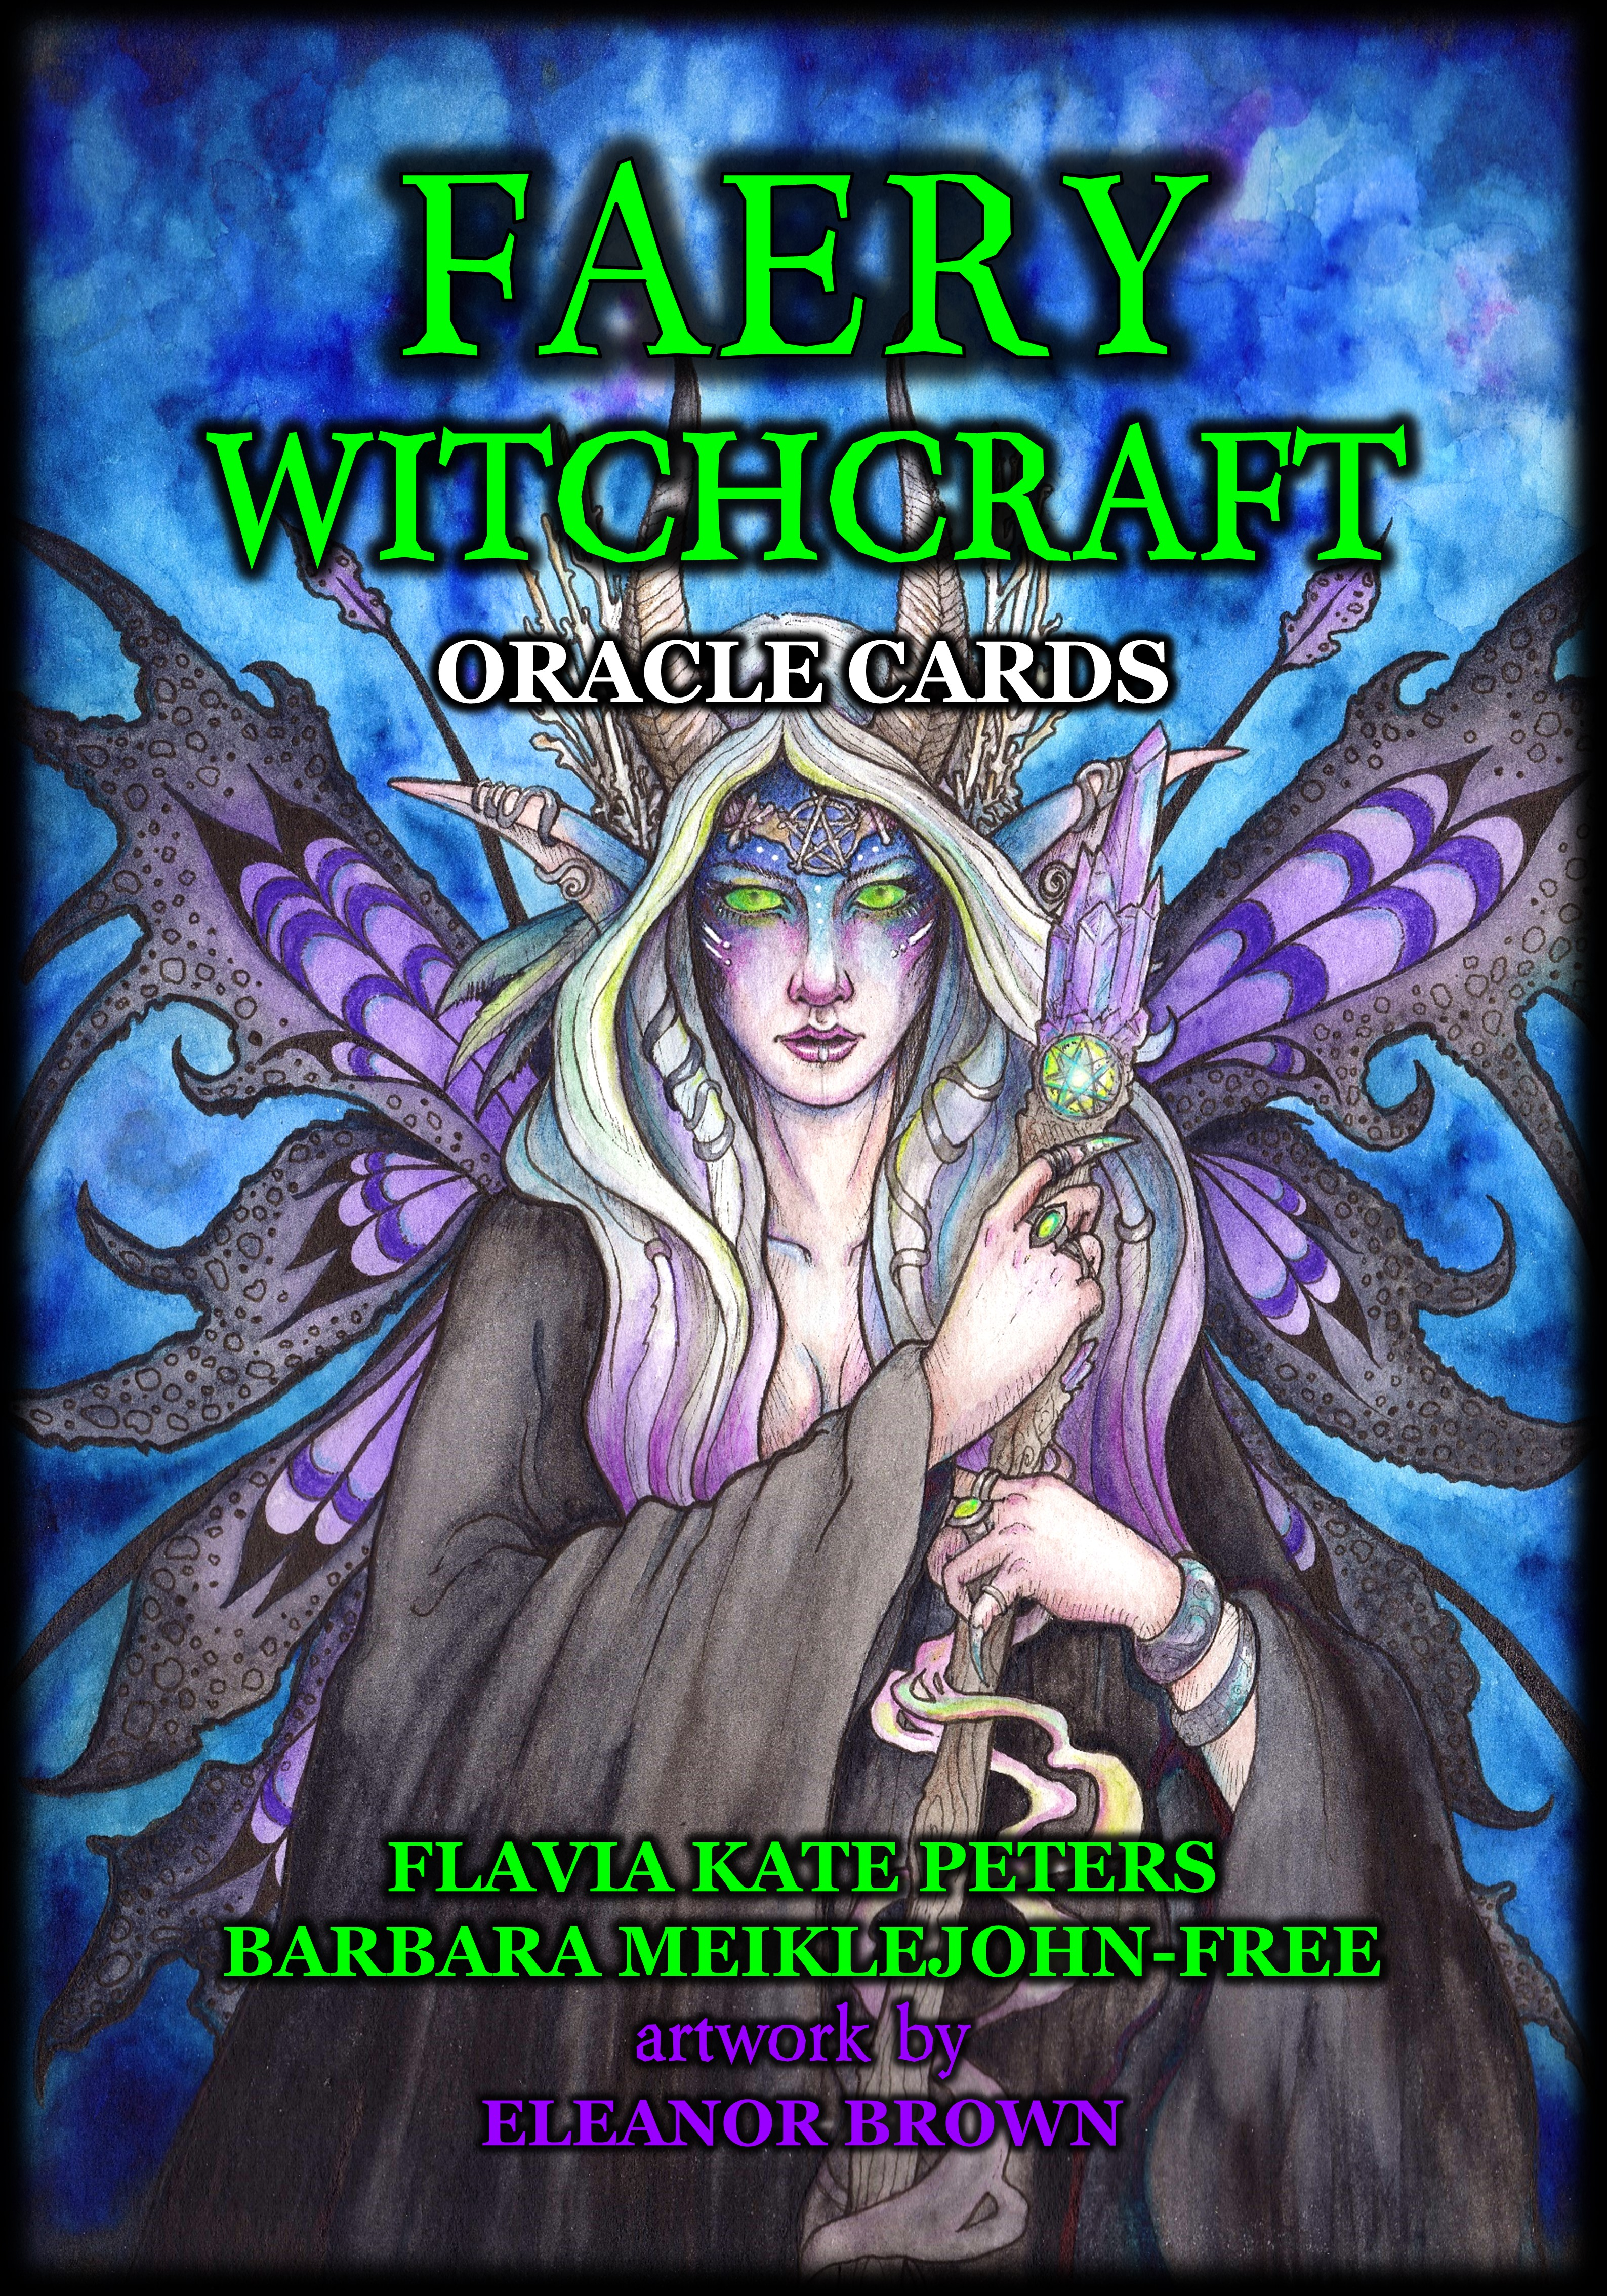 Faery Witchcraft